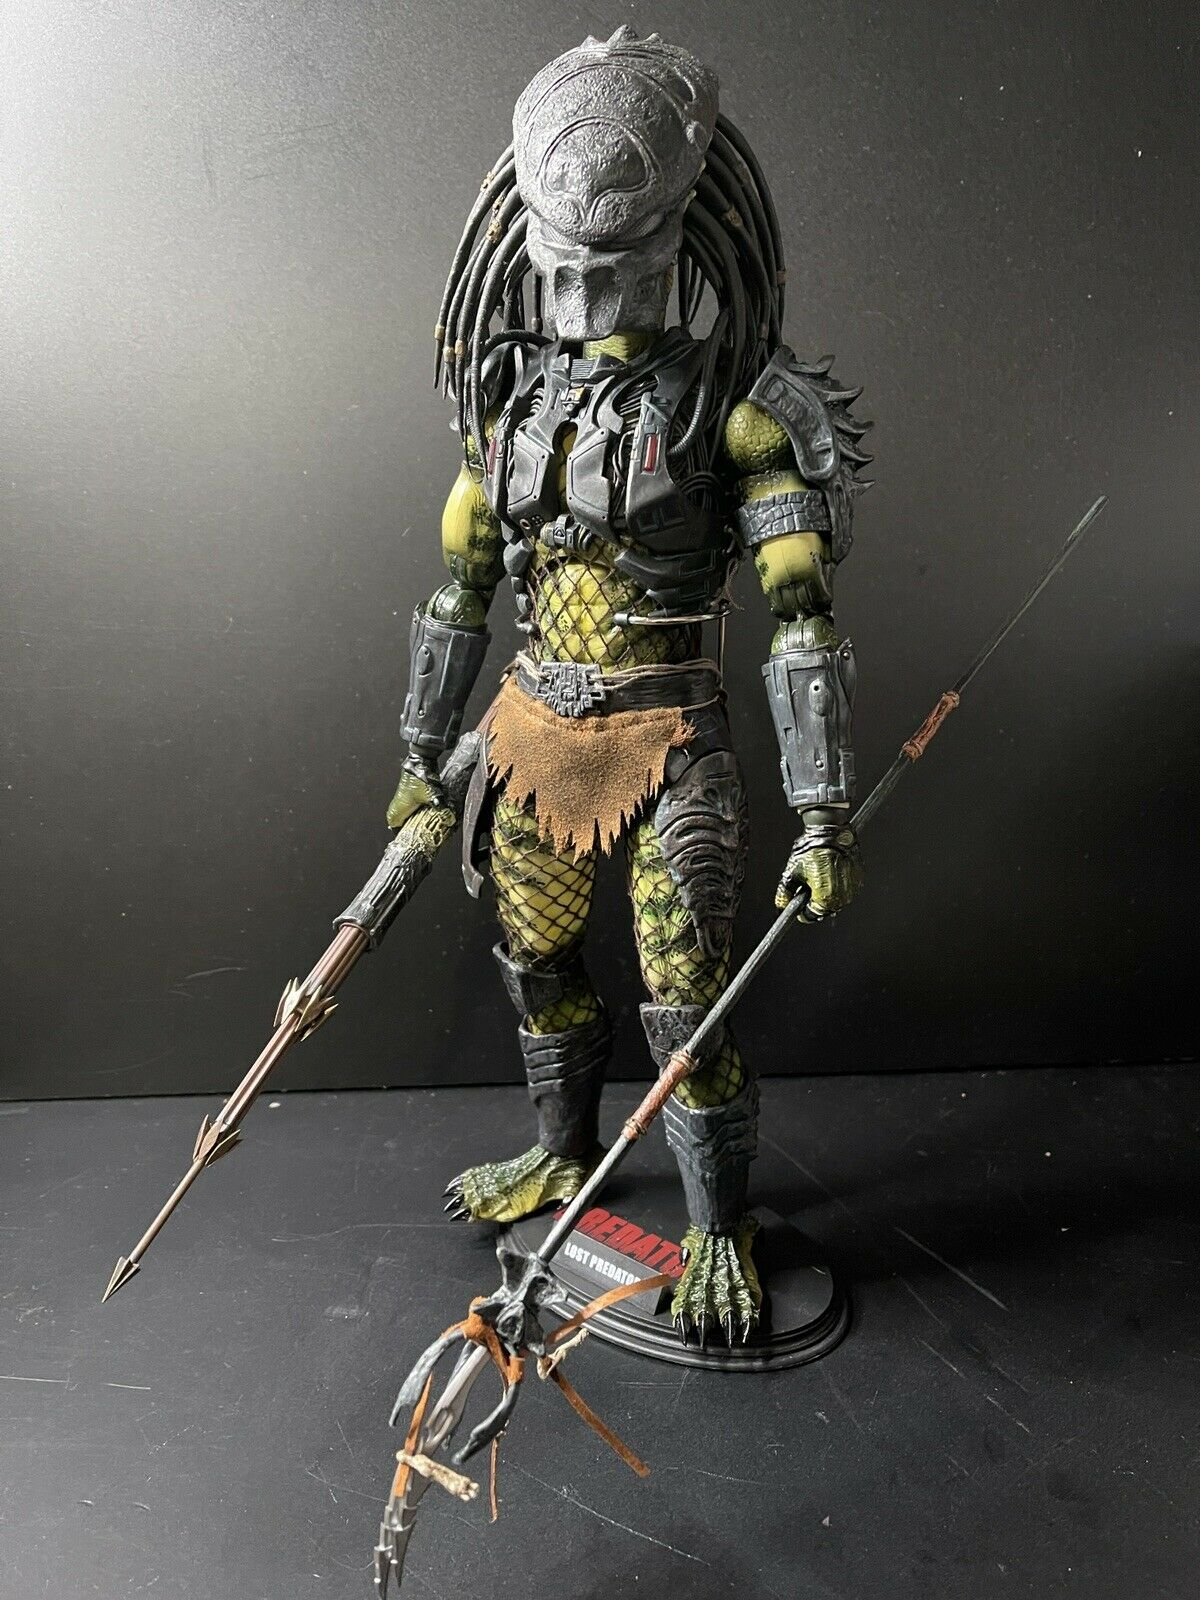 Lost Predator 2 Hot Toys All Accessories But NO BOX on eBay thumbnail